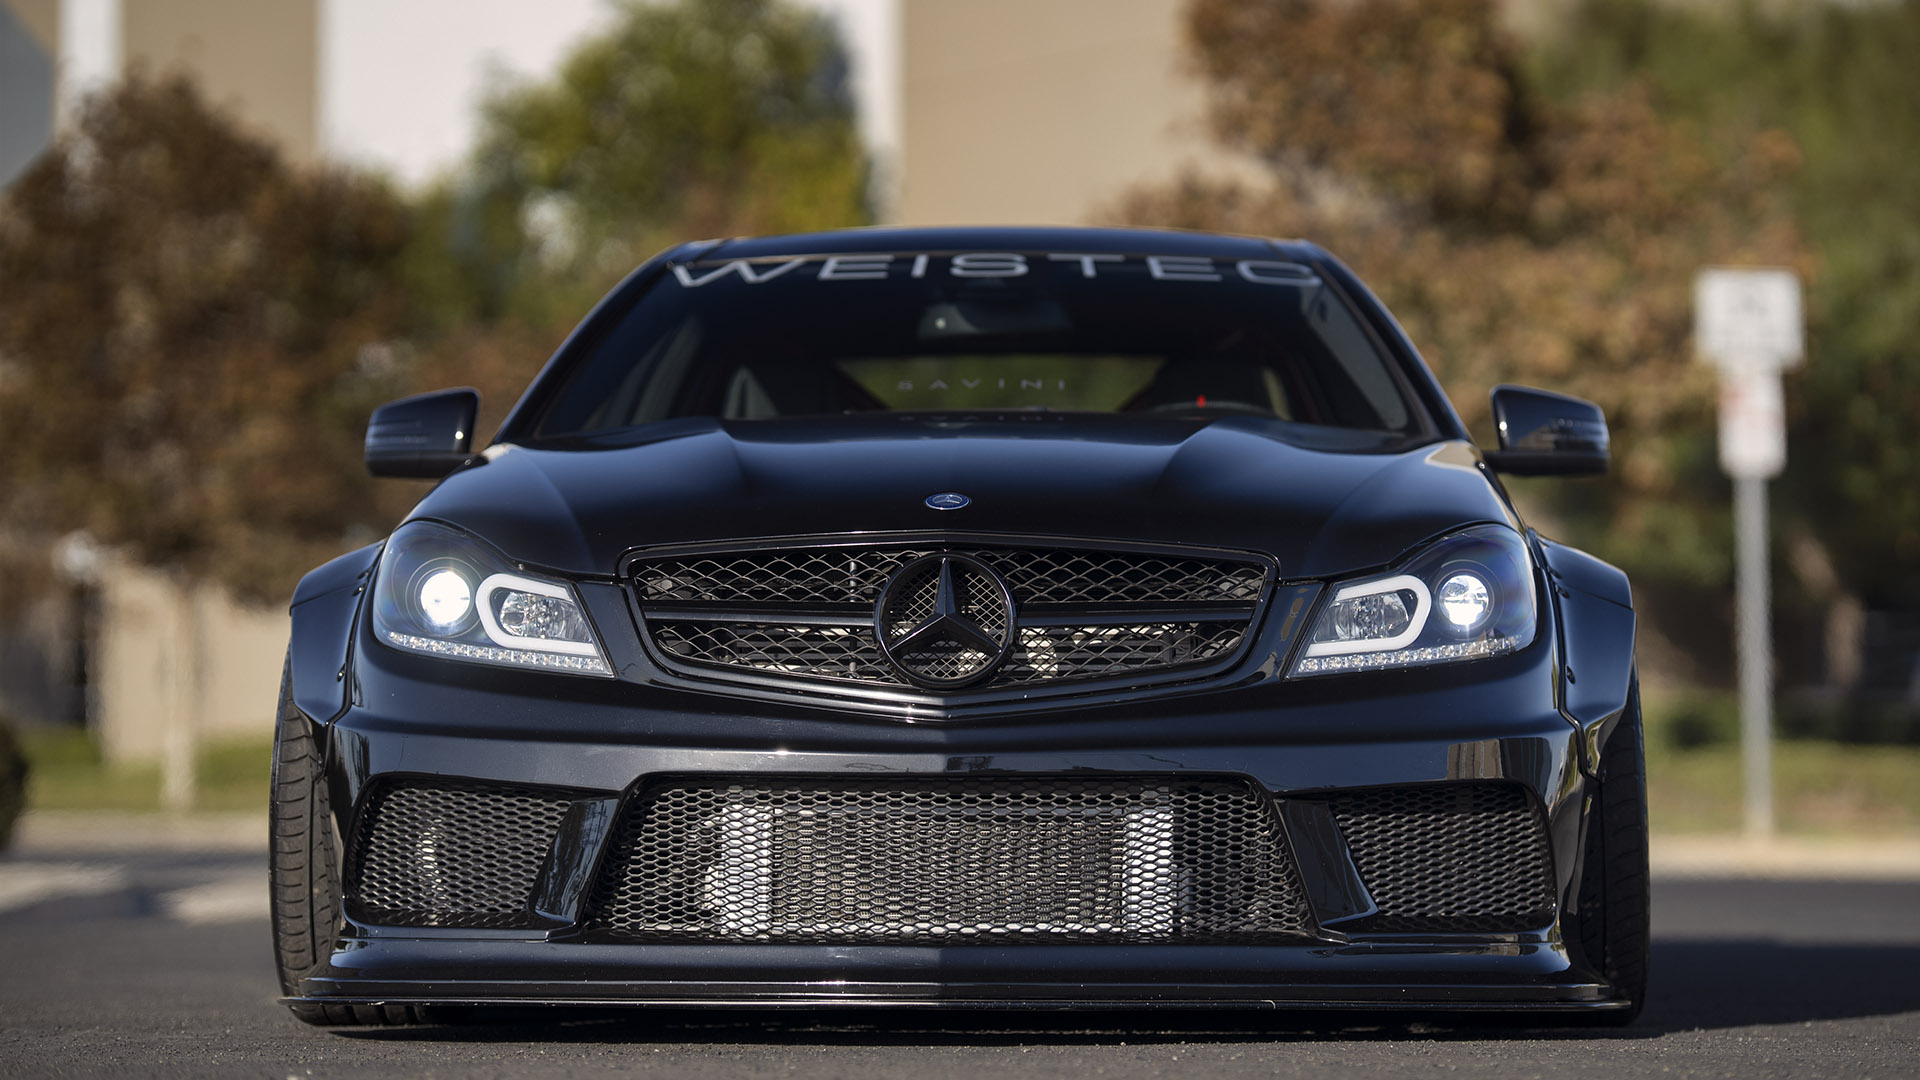 Give Me Liberty Or Give Me Death - Weistec Supercharged Mercedes-AMG C63